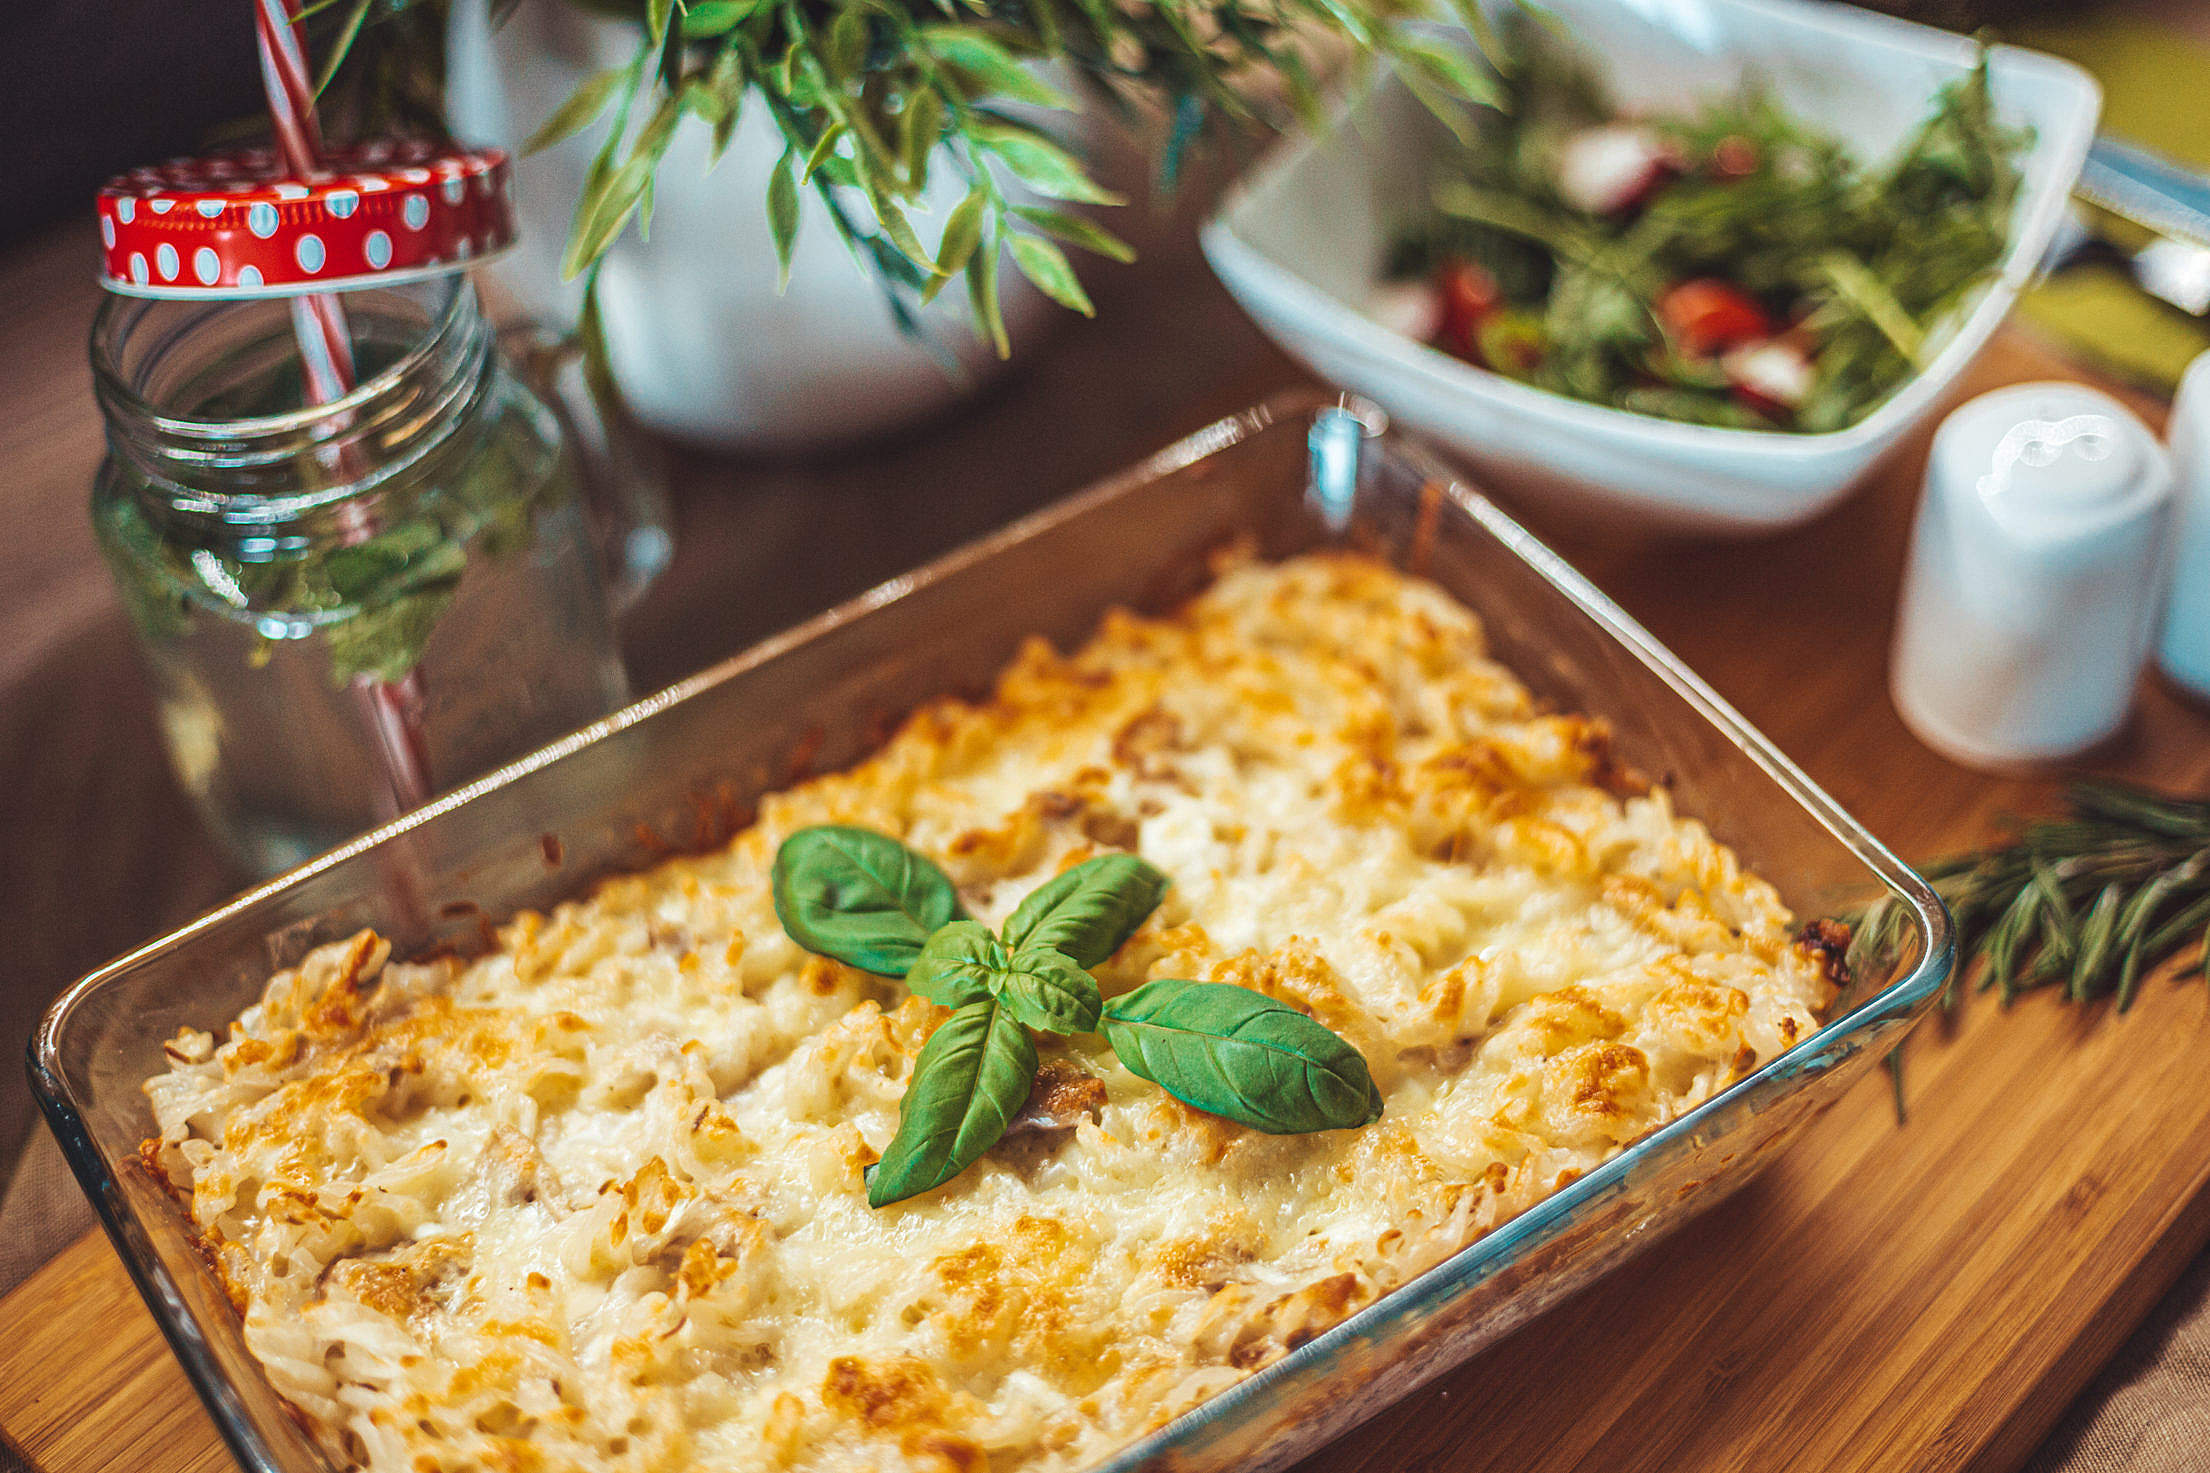 Baked Tuna Pasta in a Glass Baking Dish Free Stock Photo